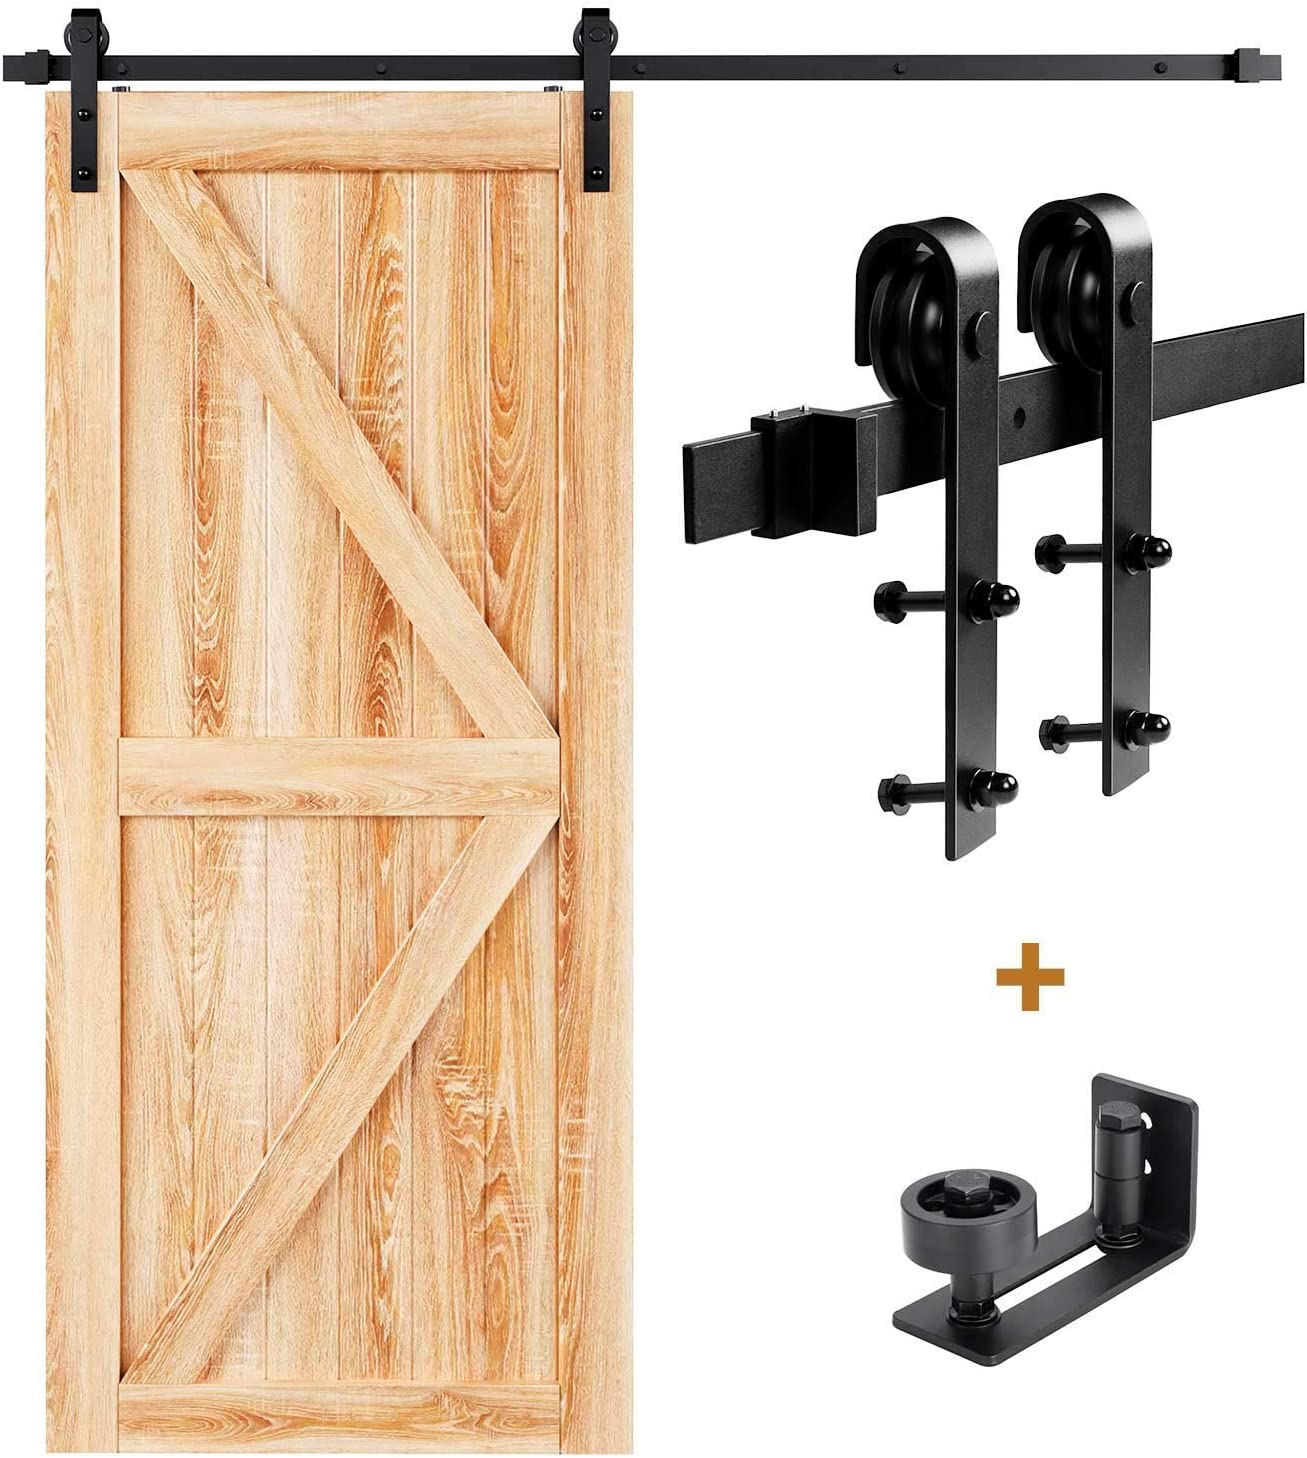 EaseLife 5 FT Sliding Barn Door Hardware Track Kit /& 8-in-1 Wall Mount Floor Guide